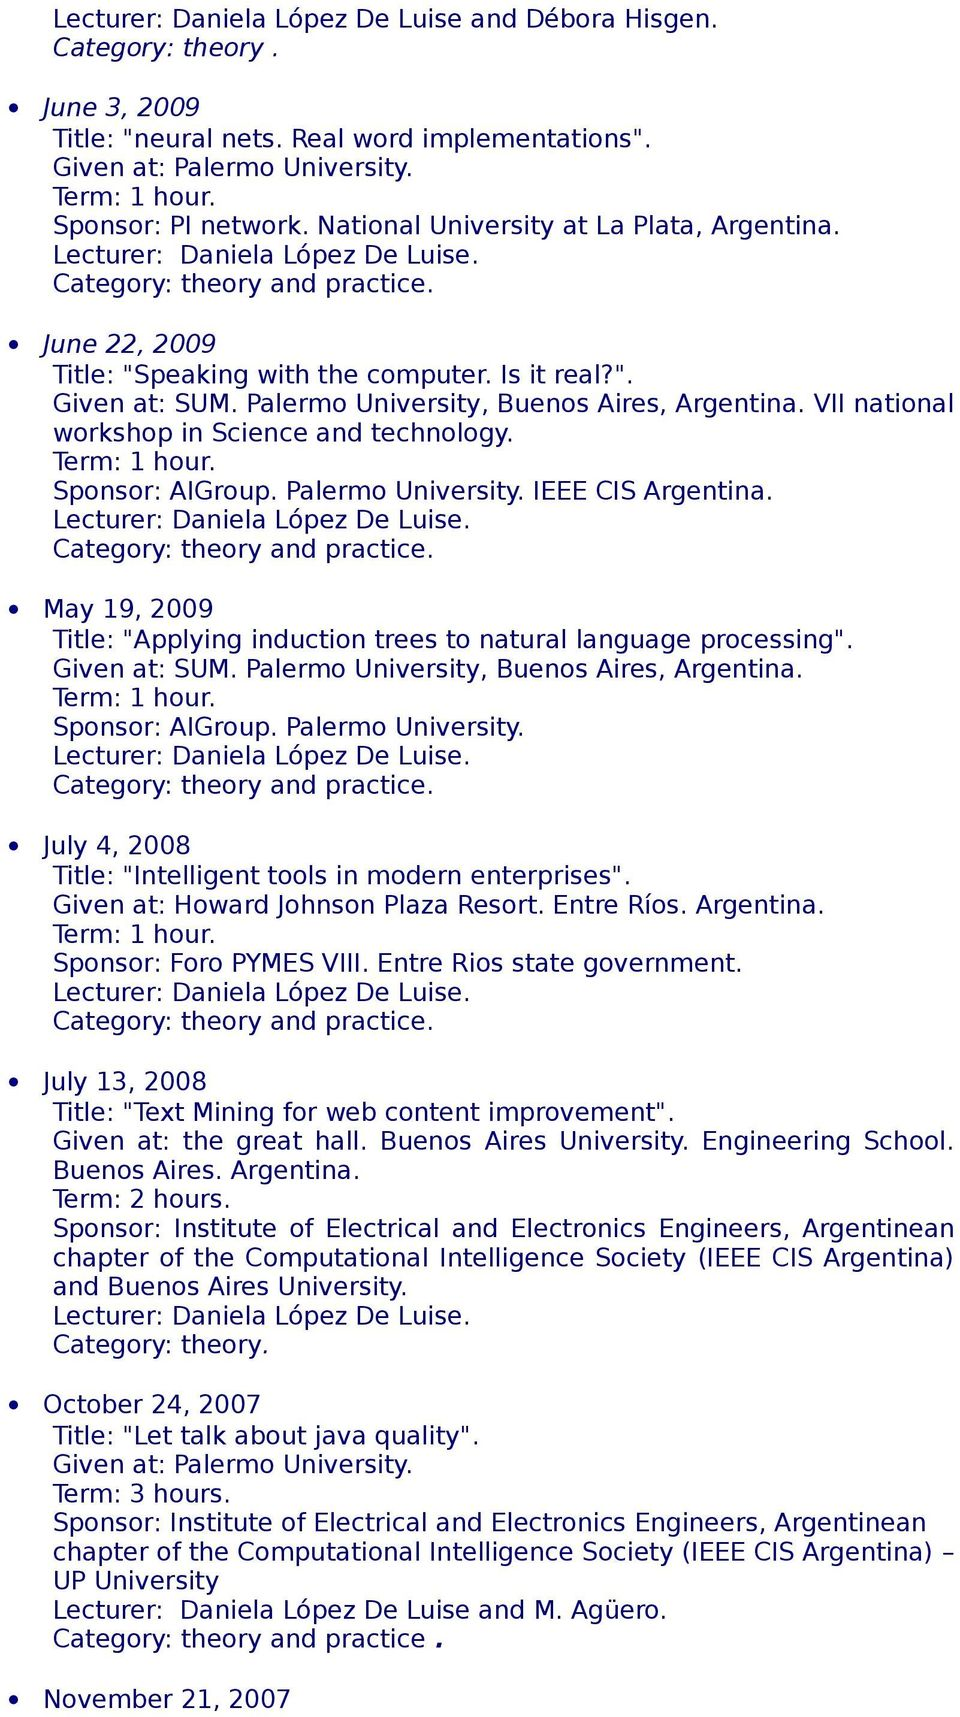 Palermo University, Buenos Aires, Argentina. VII national workshop in Science and technology. Term: 1 hour. Sponsor: AIGroup. Palermo University. IEEE CIS Argentina. Lecturer: Daniela López De Luise.